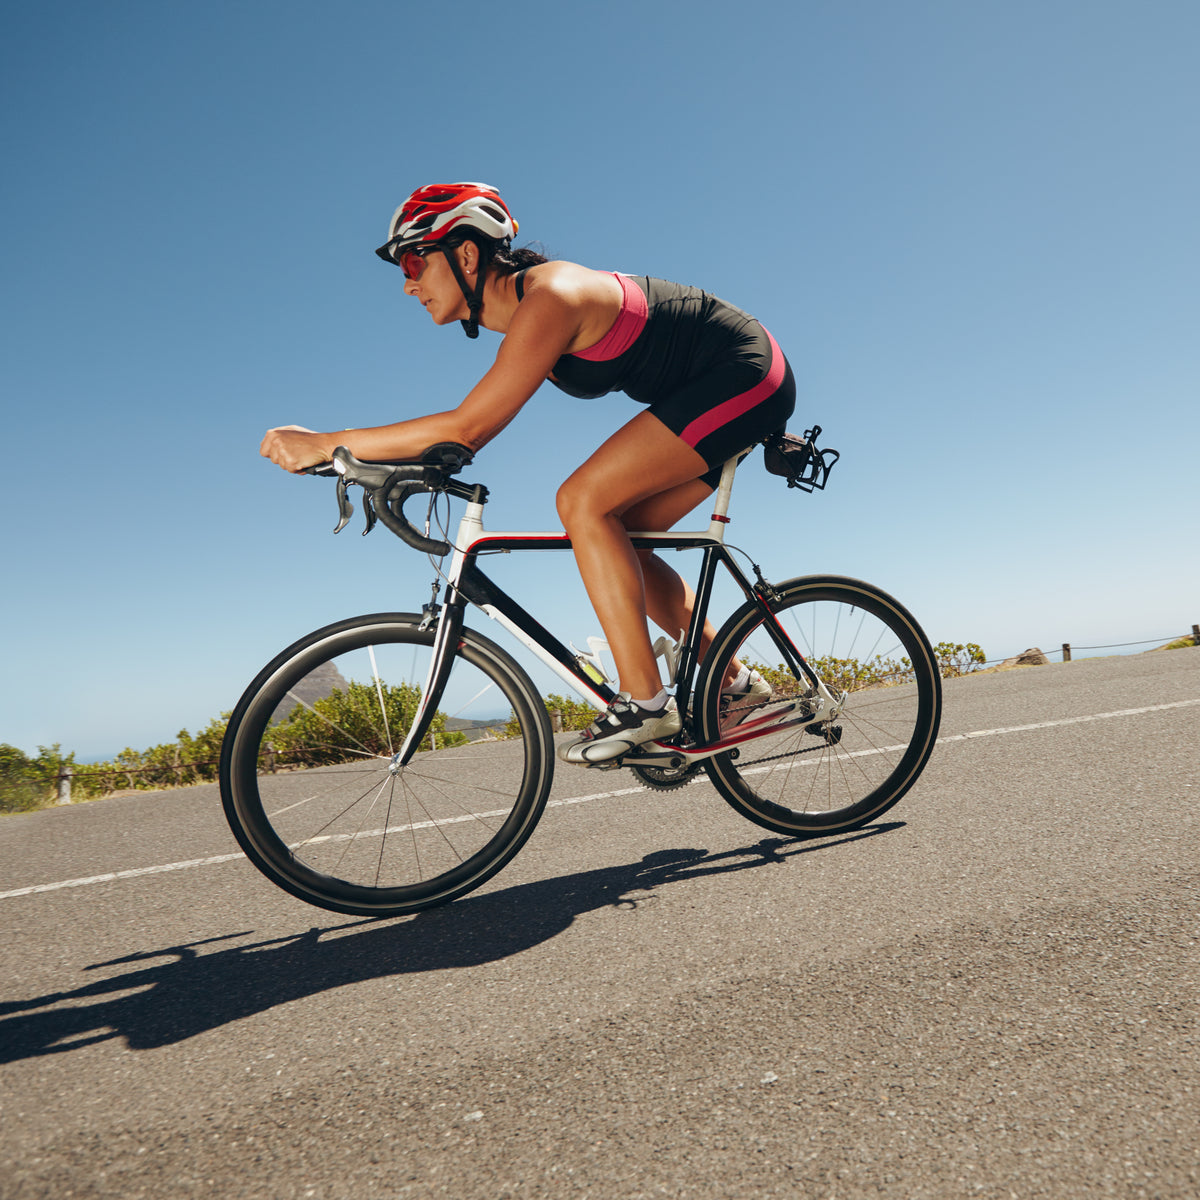 Best Conditioning Exercises For Cyclists